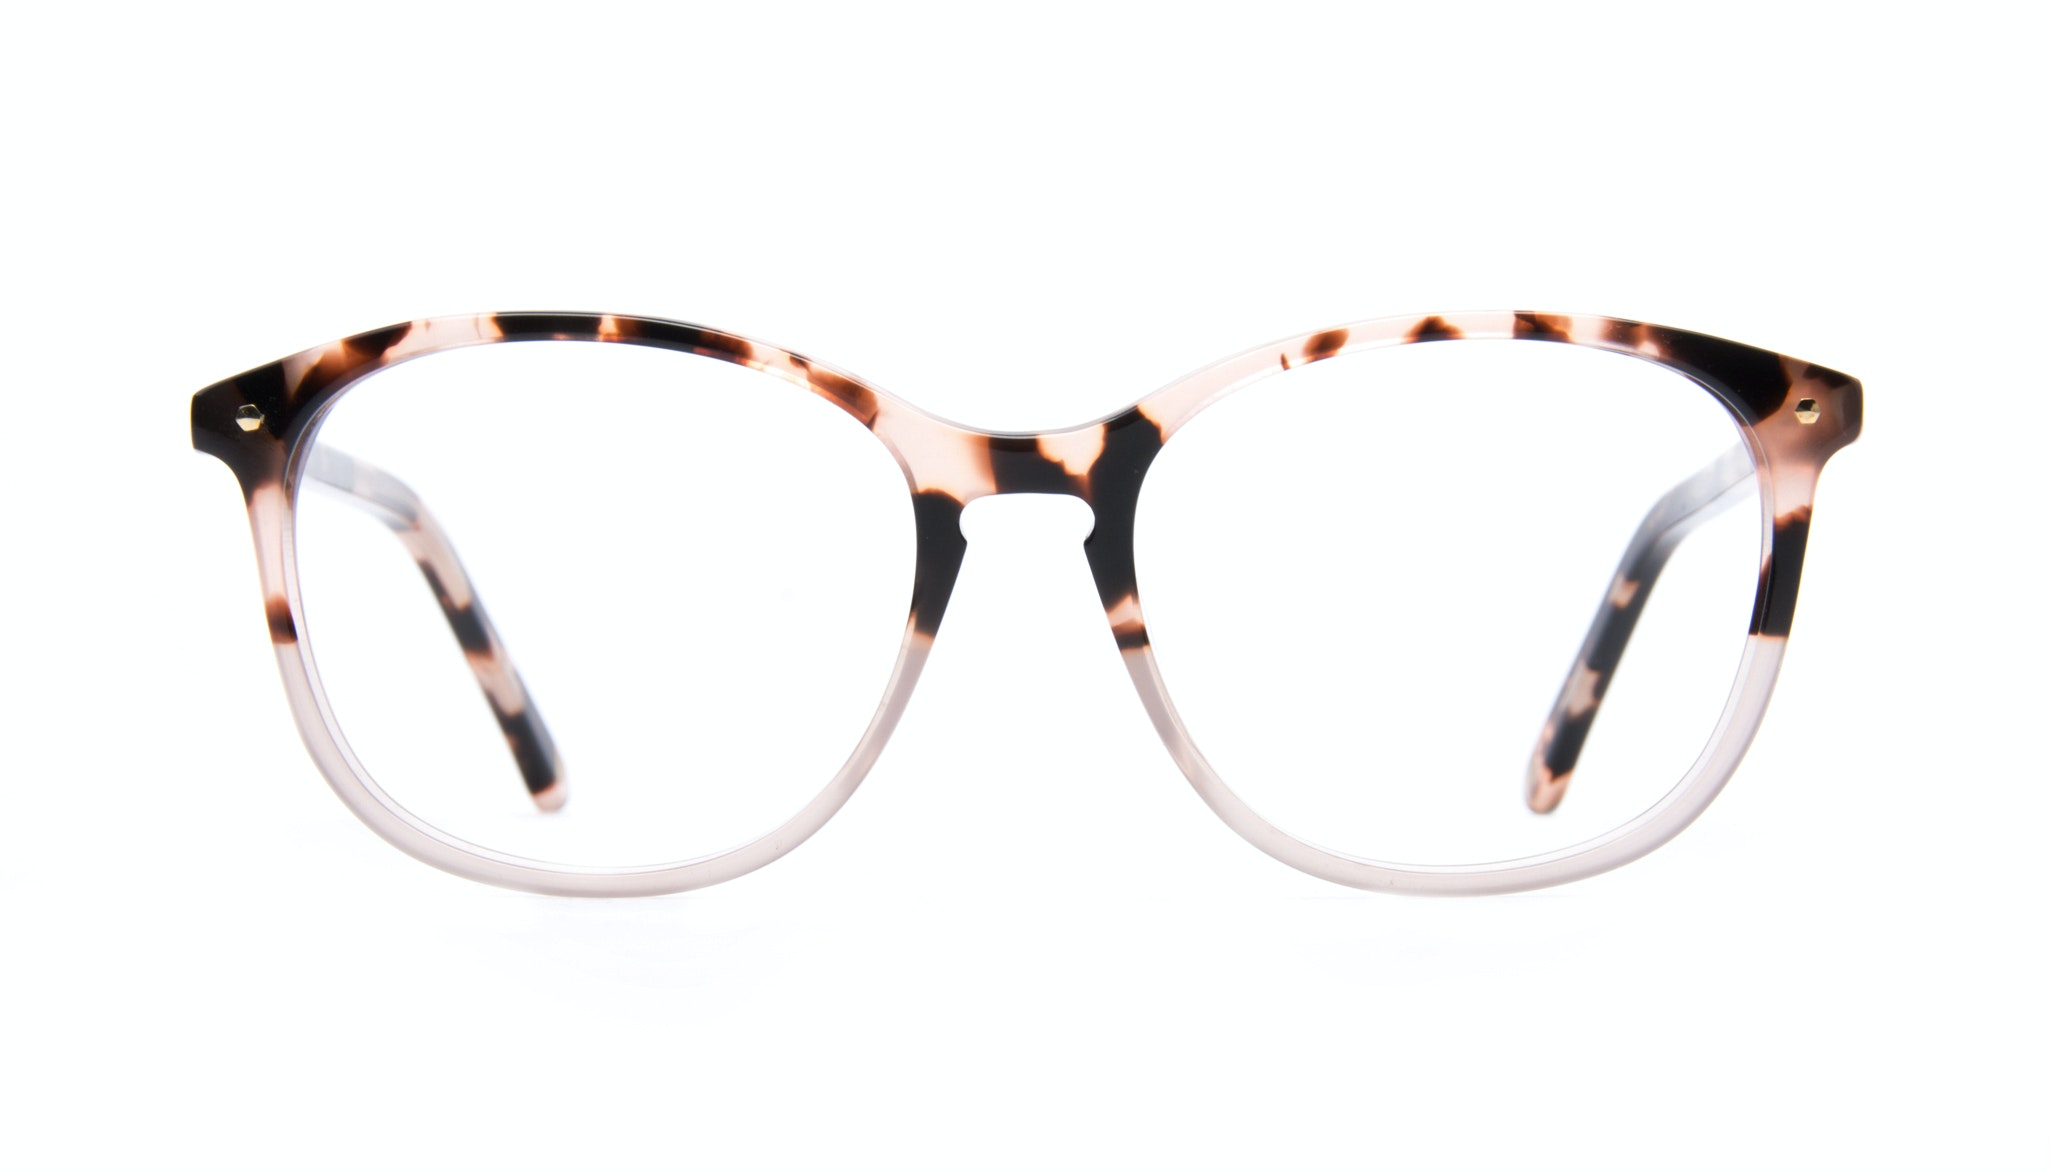 Affordable Fashion Glasses Rectangle Round Eyeglasses Women Nadine Two Tone Pink Front